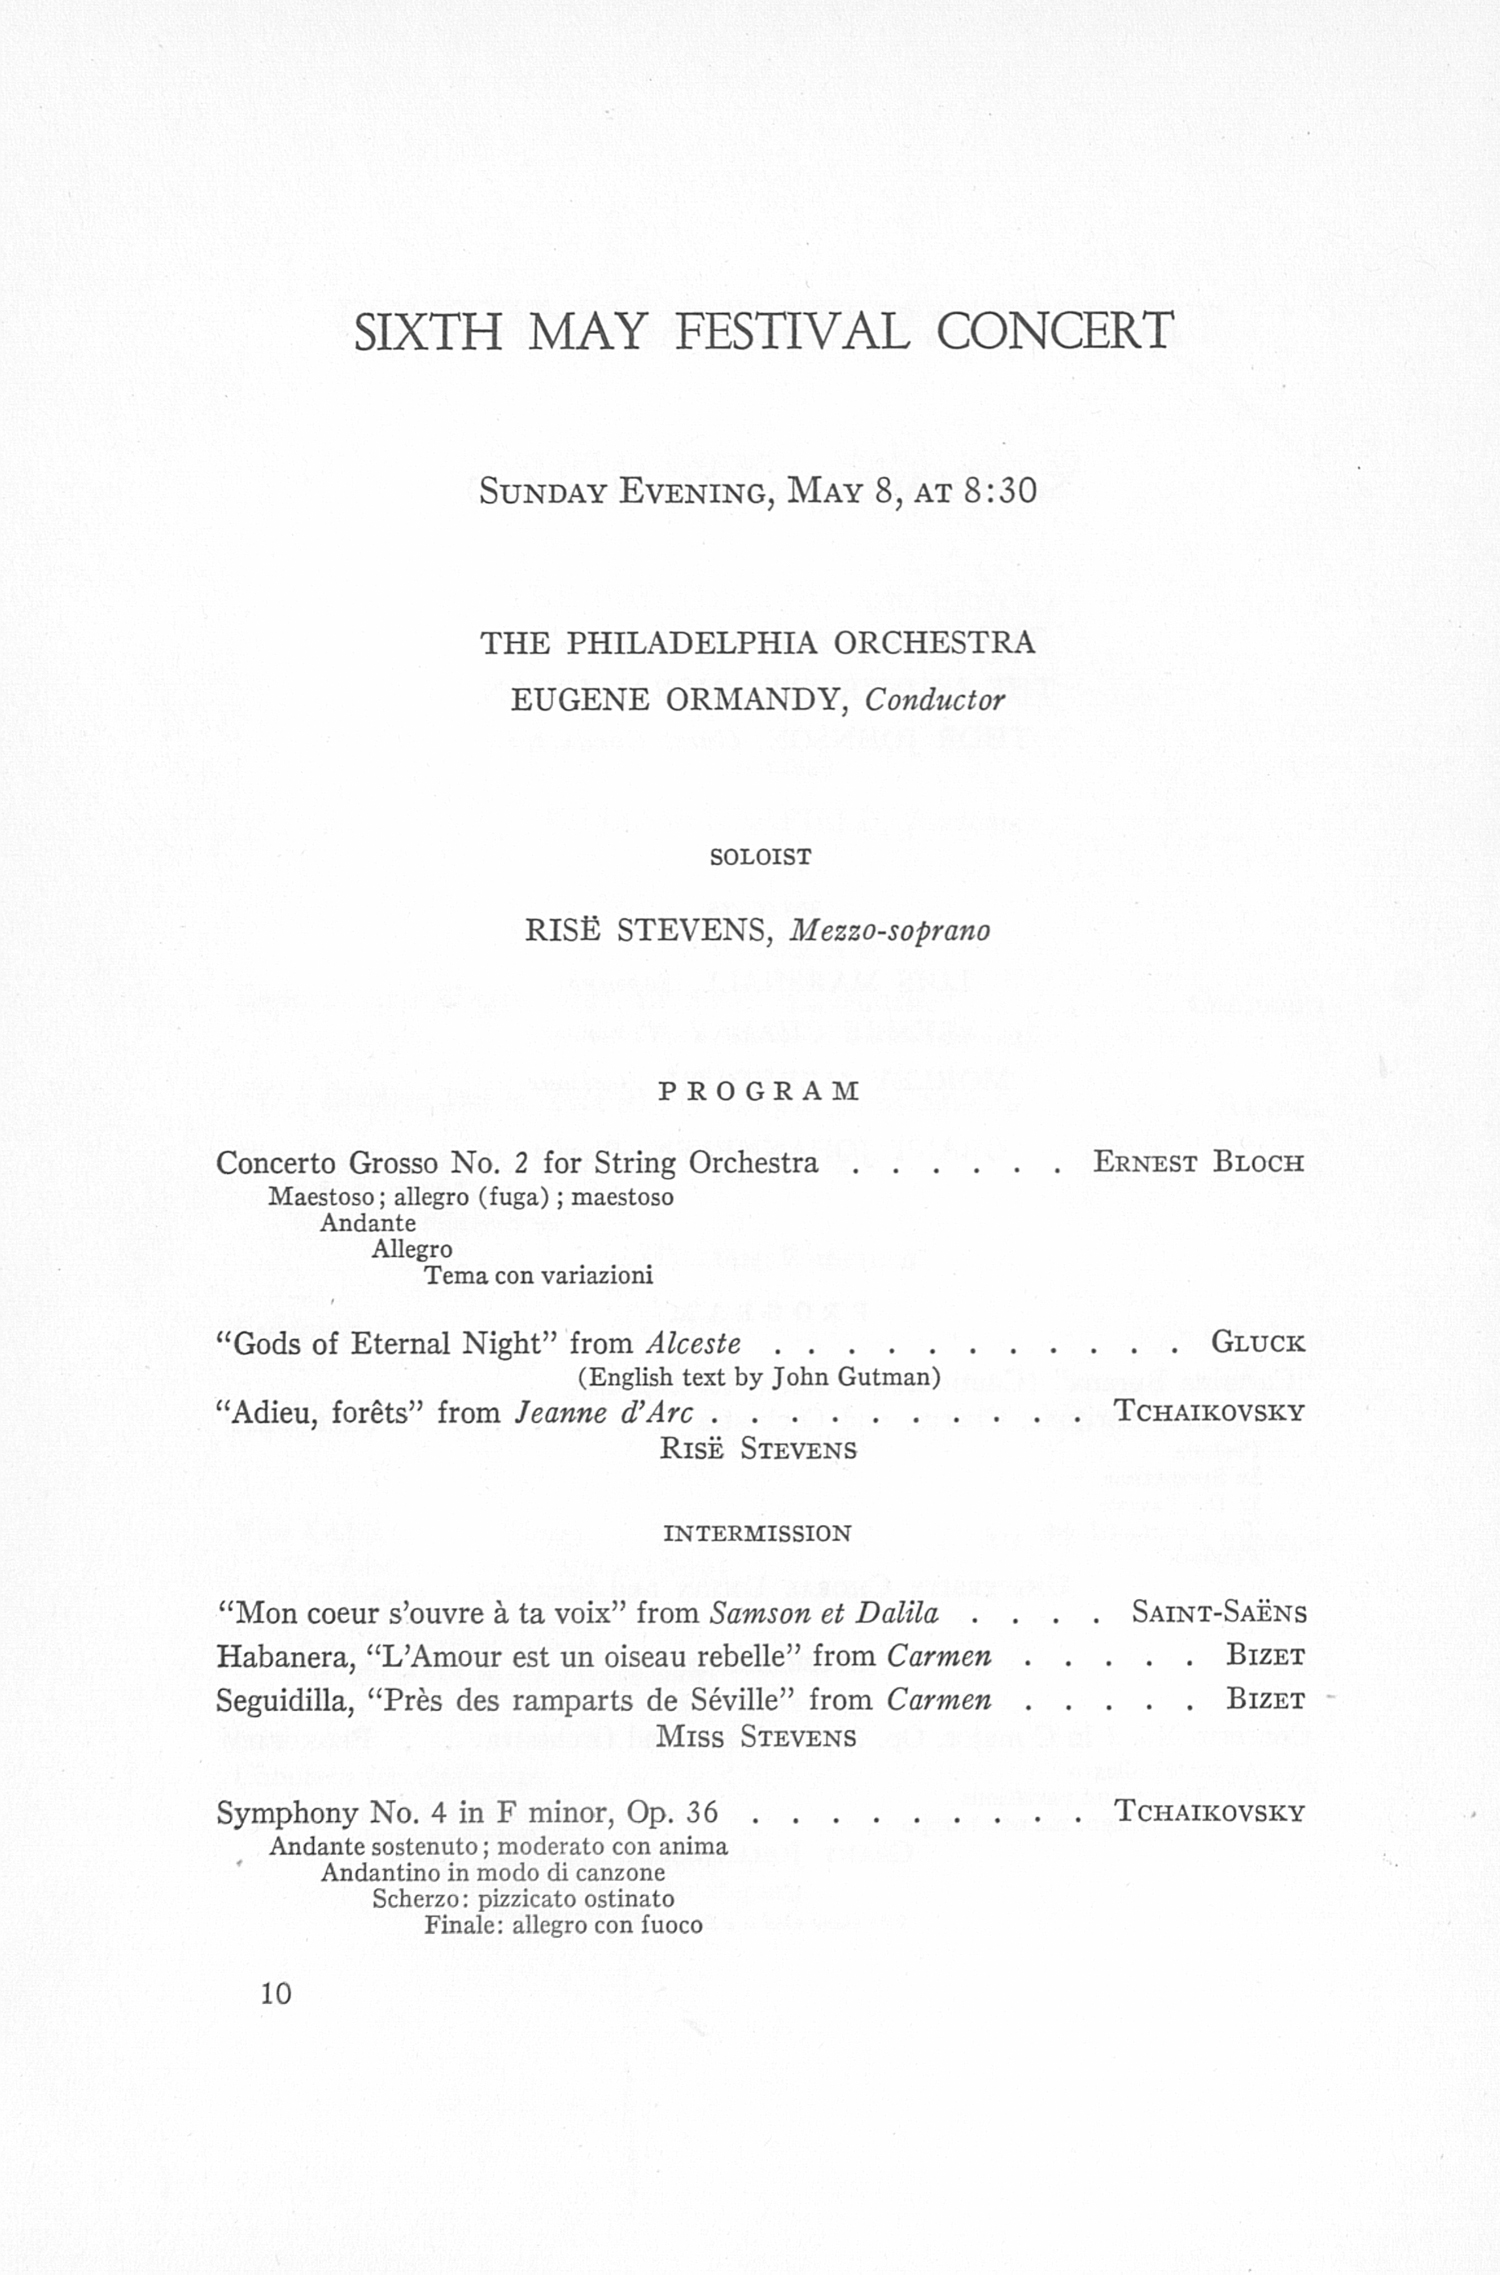 UMS Concert Program, May 5, 6, 7, 8, 1955: The Sixty-second Annual May